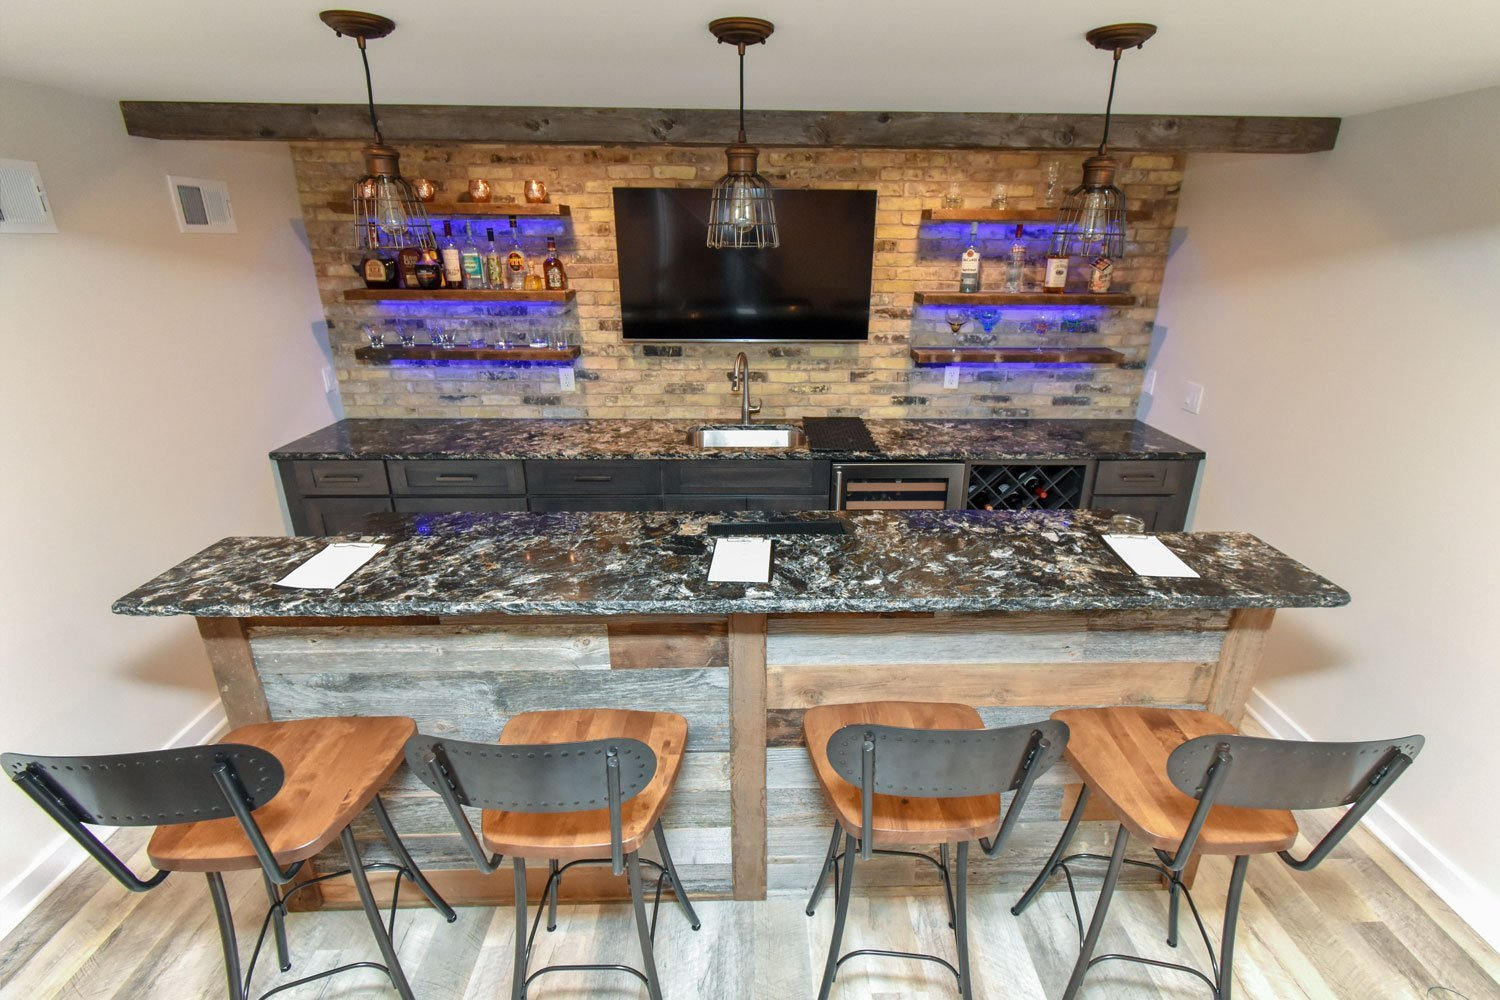 Basement bar remodel with LED under shelf lighting